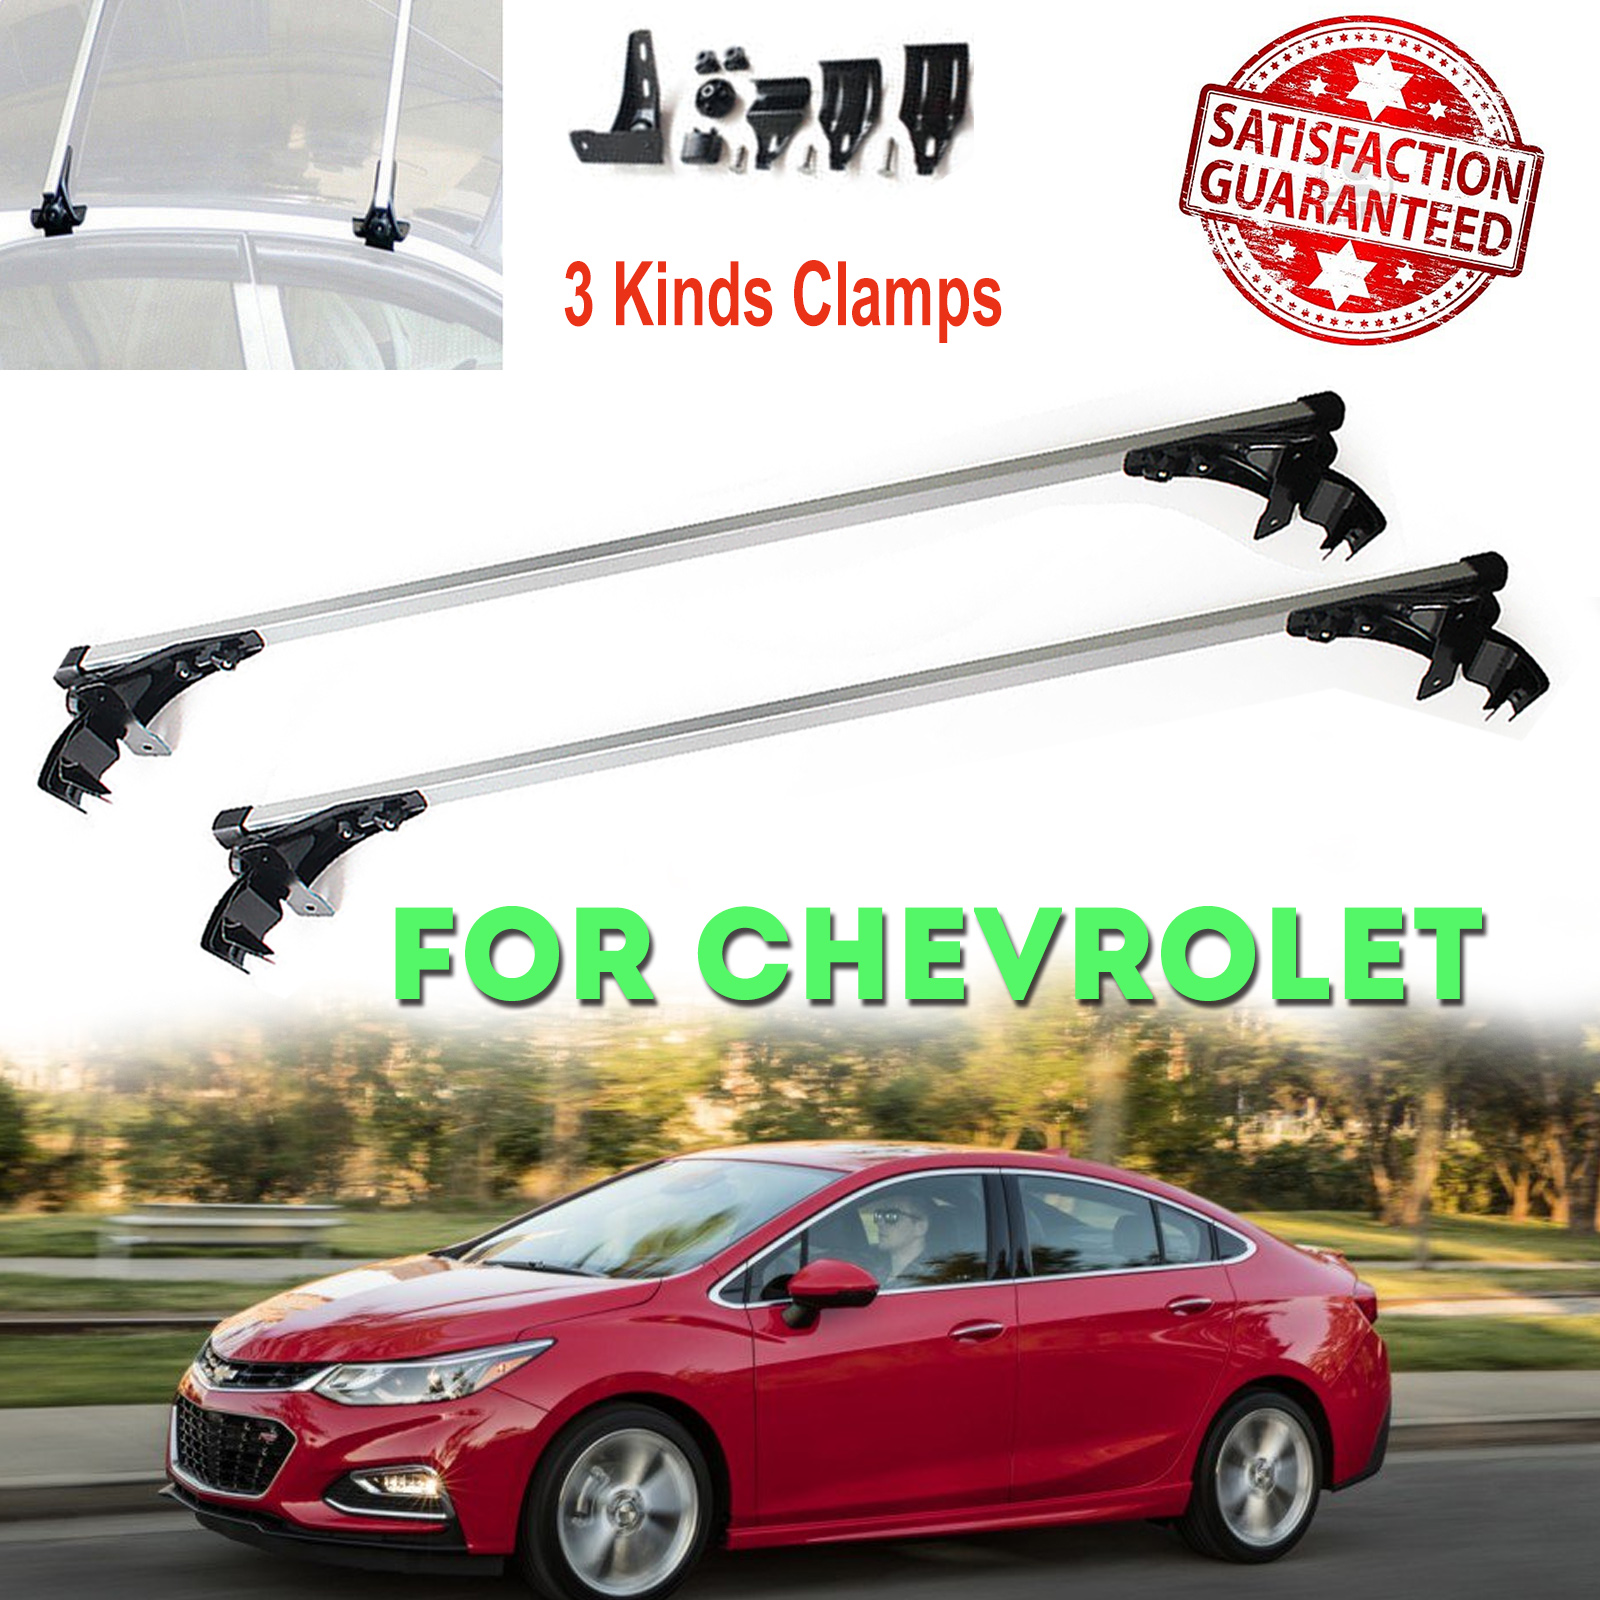 For Chevrolet Malibu 2011-2016 Car Top Roof Rack Cross Bars Luggage Carrier